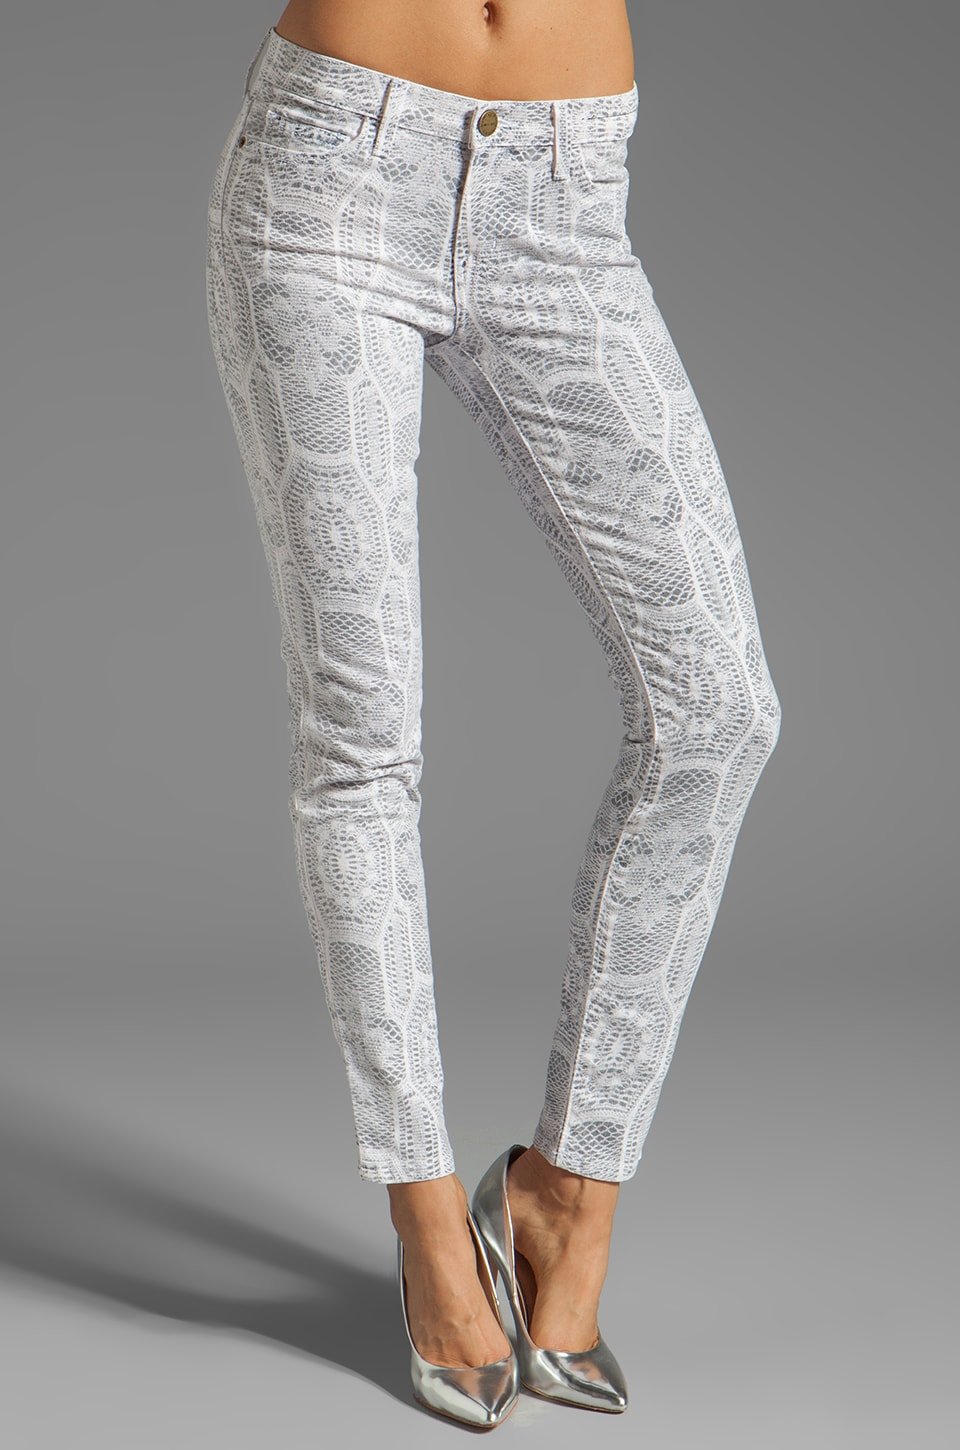 Current/Elliott The Ankle Skinny in Crochet